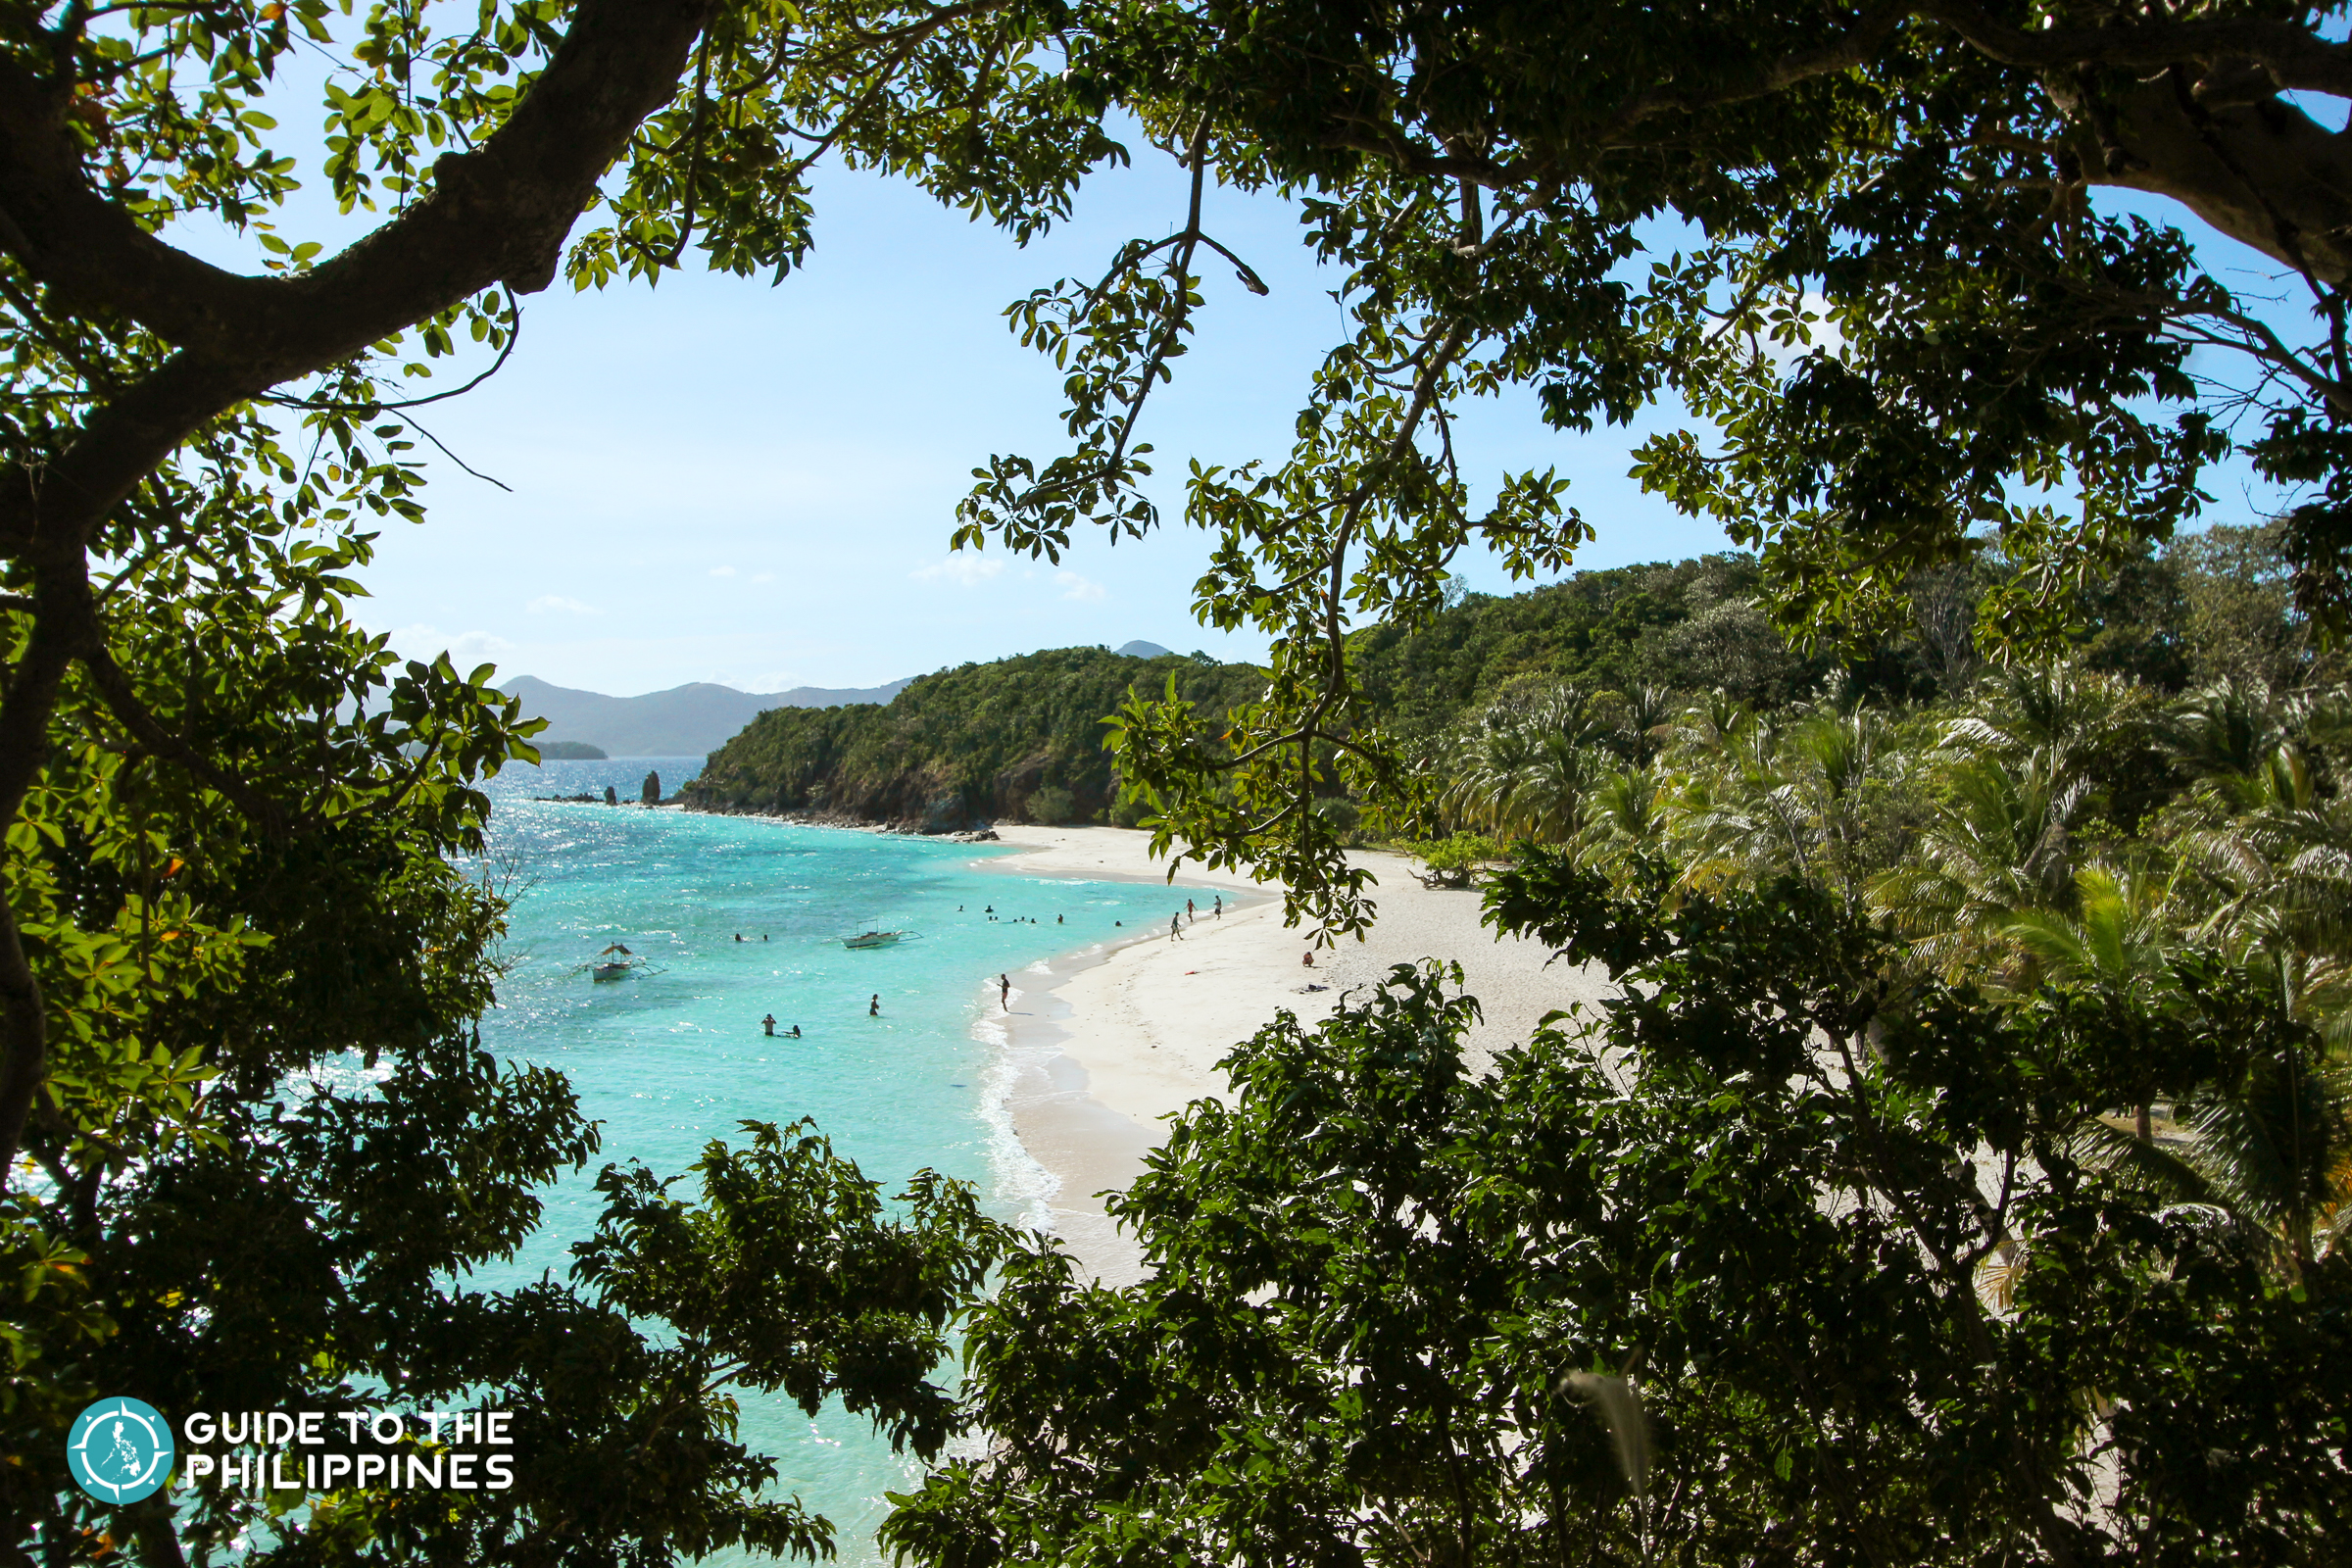 Malcapuya Island accessible from Club Paradise Resort